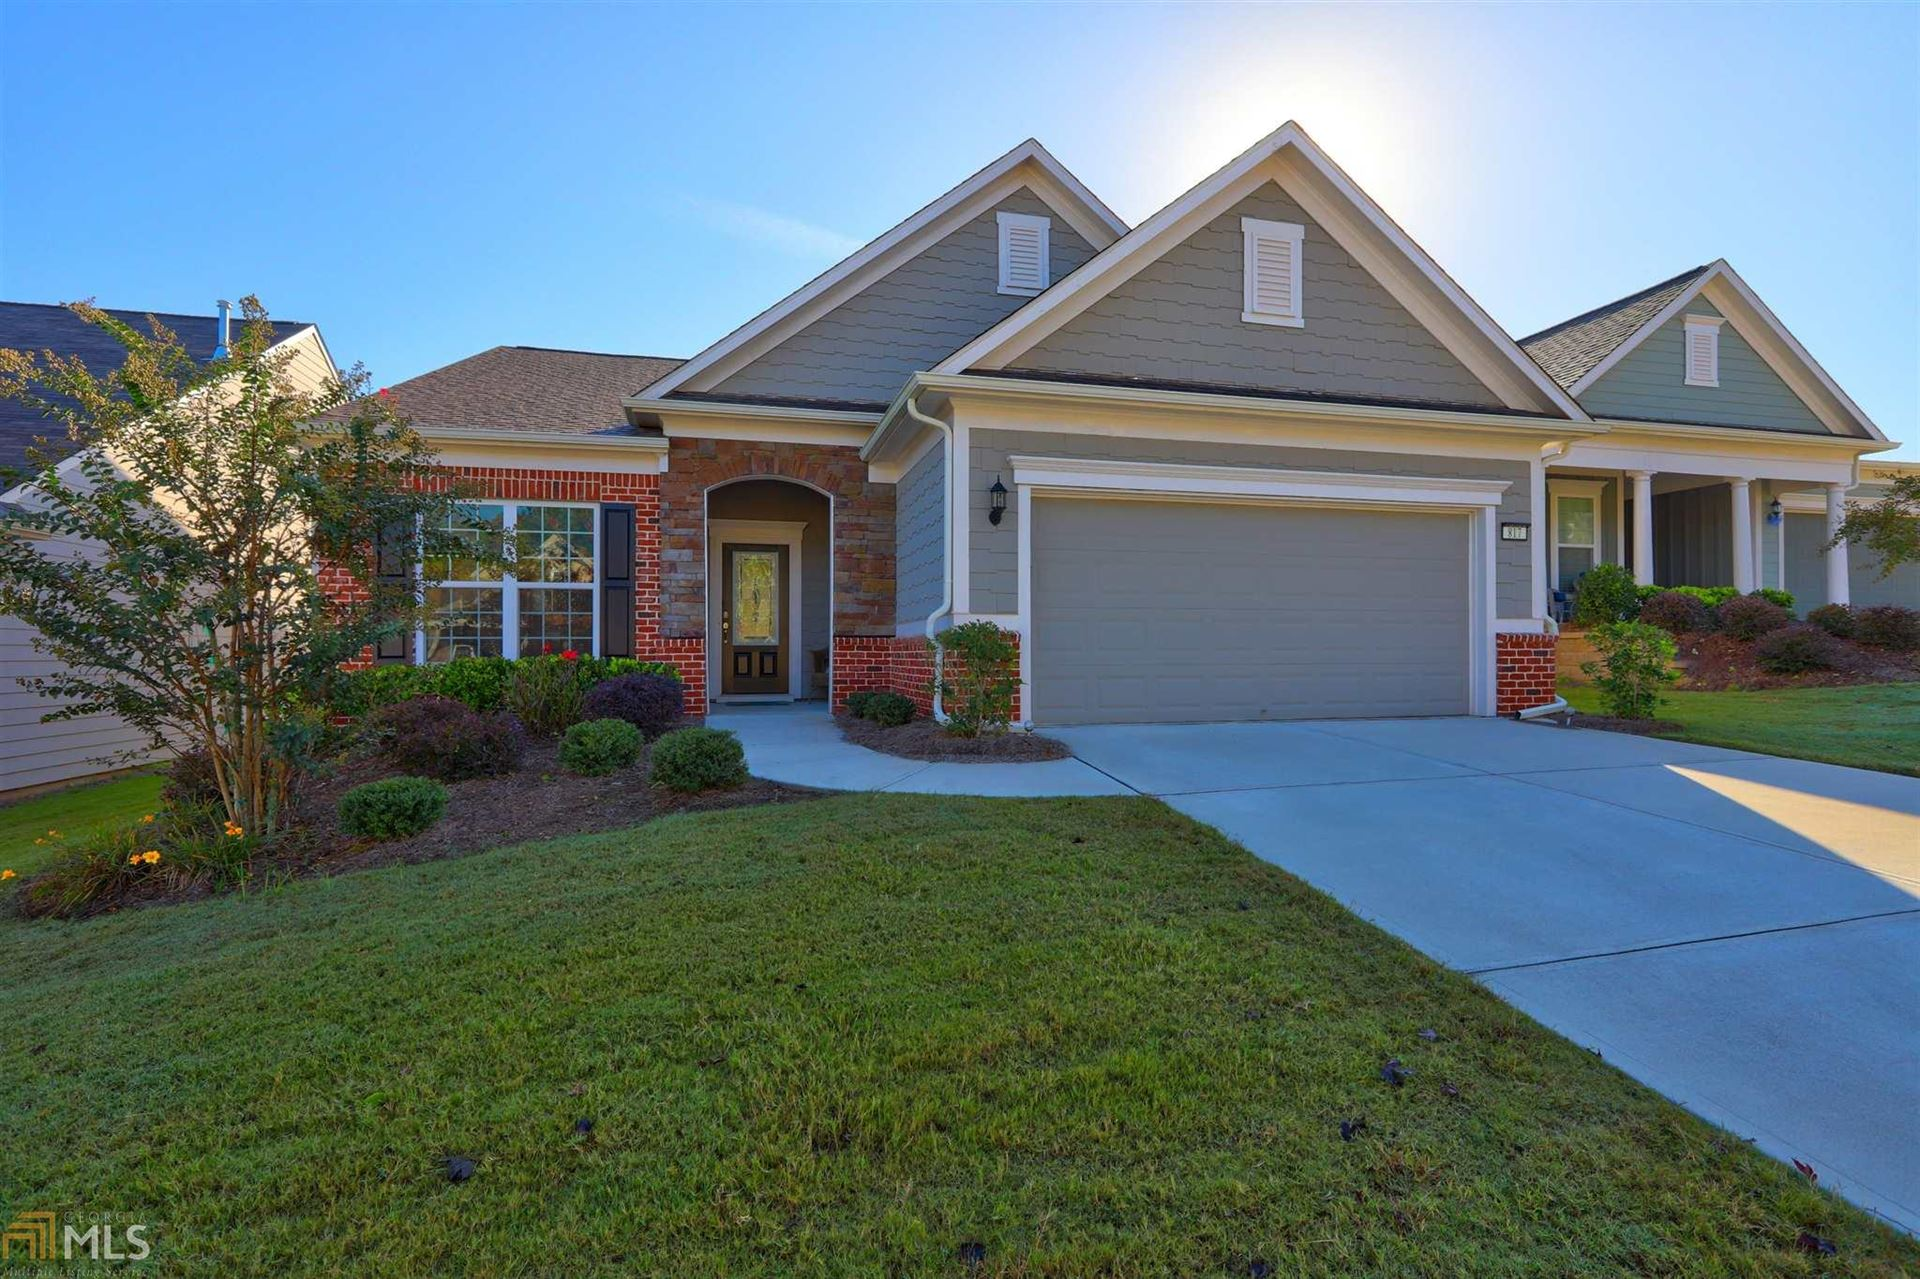 817 Firefly Ct, Griffin, GA 30223 - MLS#: 8875843